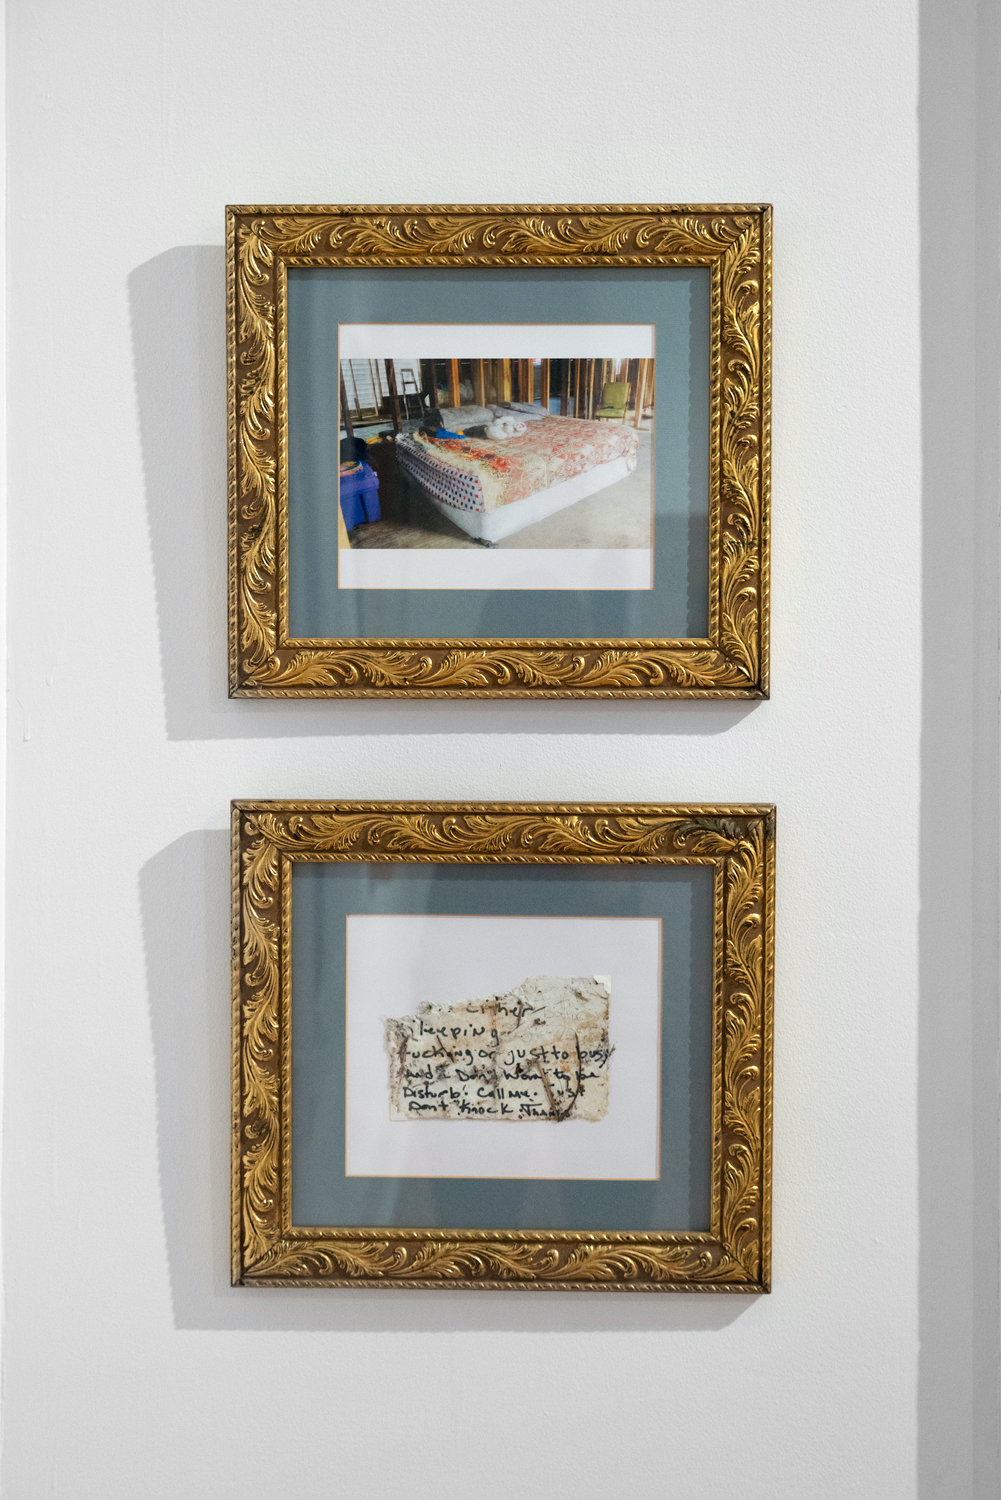 Heidi Hickman, House, 2016; Home, 2016. Framed digital prints.